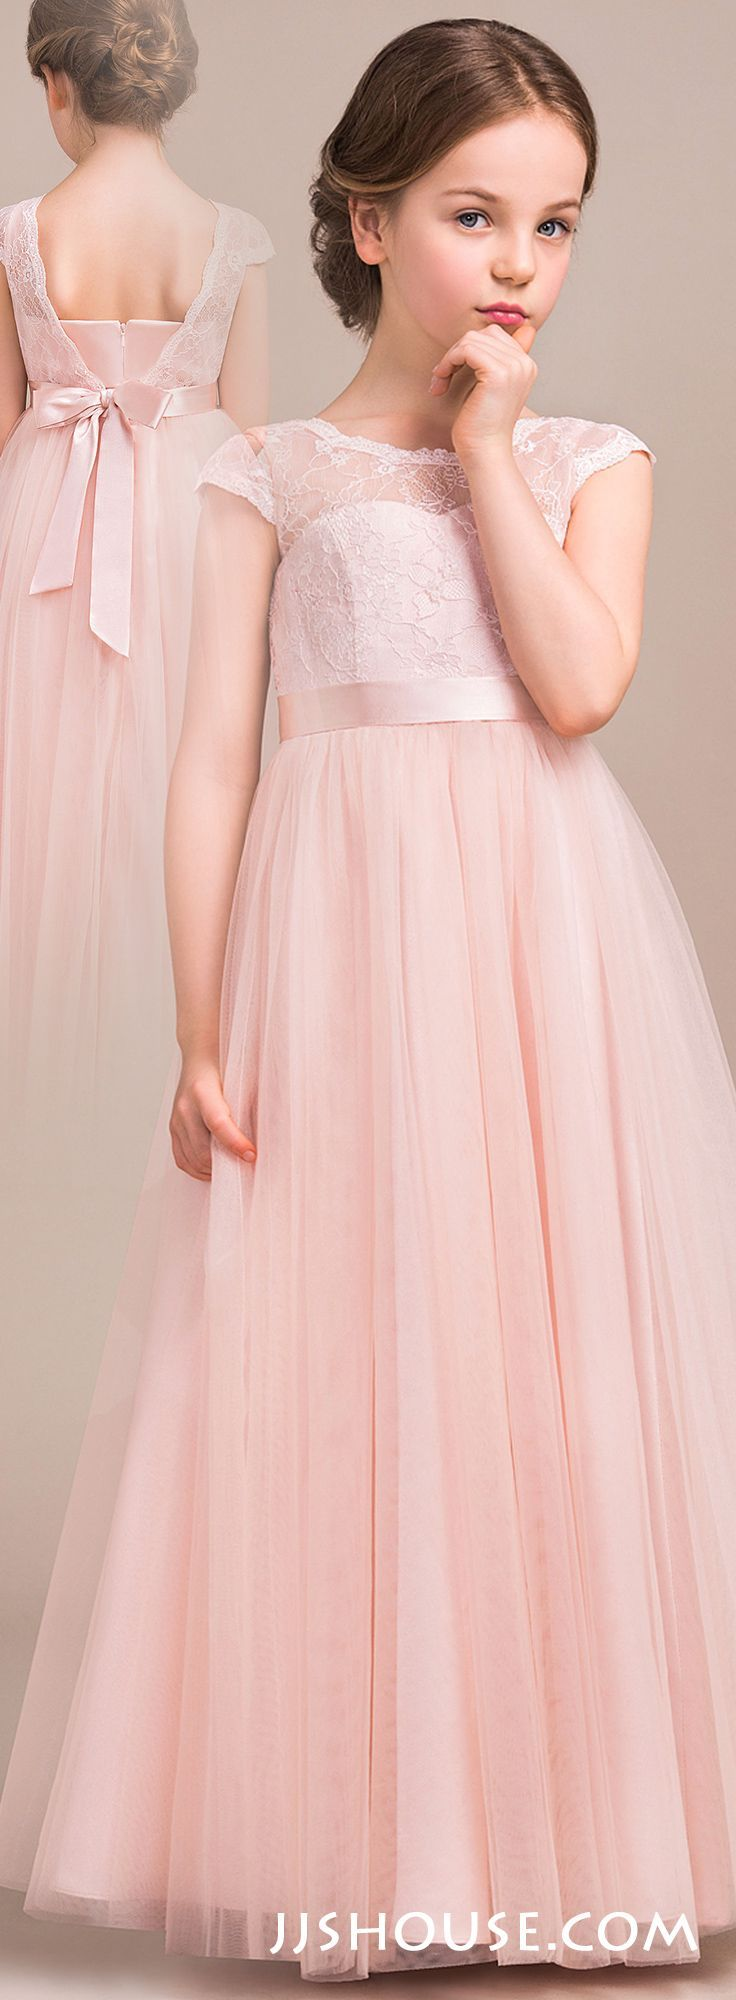 Best 25 junior bridesmaid dresses ideas on pinterest junior a lineprincess scoop neck floor length bows zipper up sleeves short sleeves no pearl pink general tulle lace junior bridesmaid dress ombrellifo Images